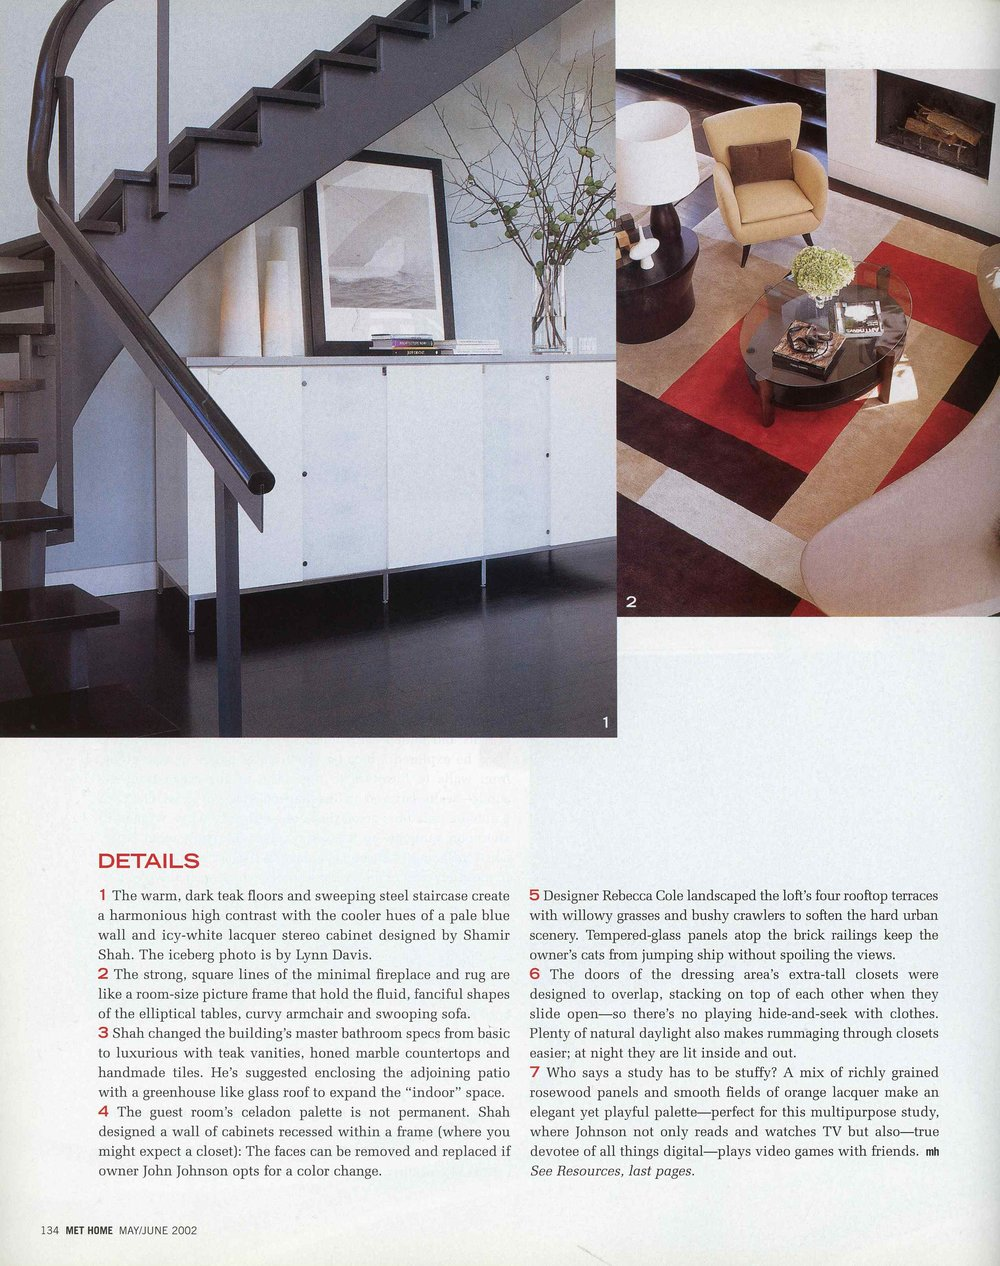 Met Home_May-June 02_Johnson Apt_Full Article_Page_8.jpg